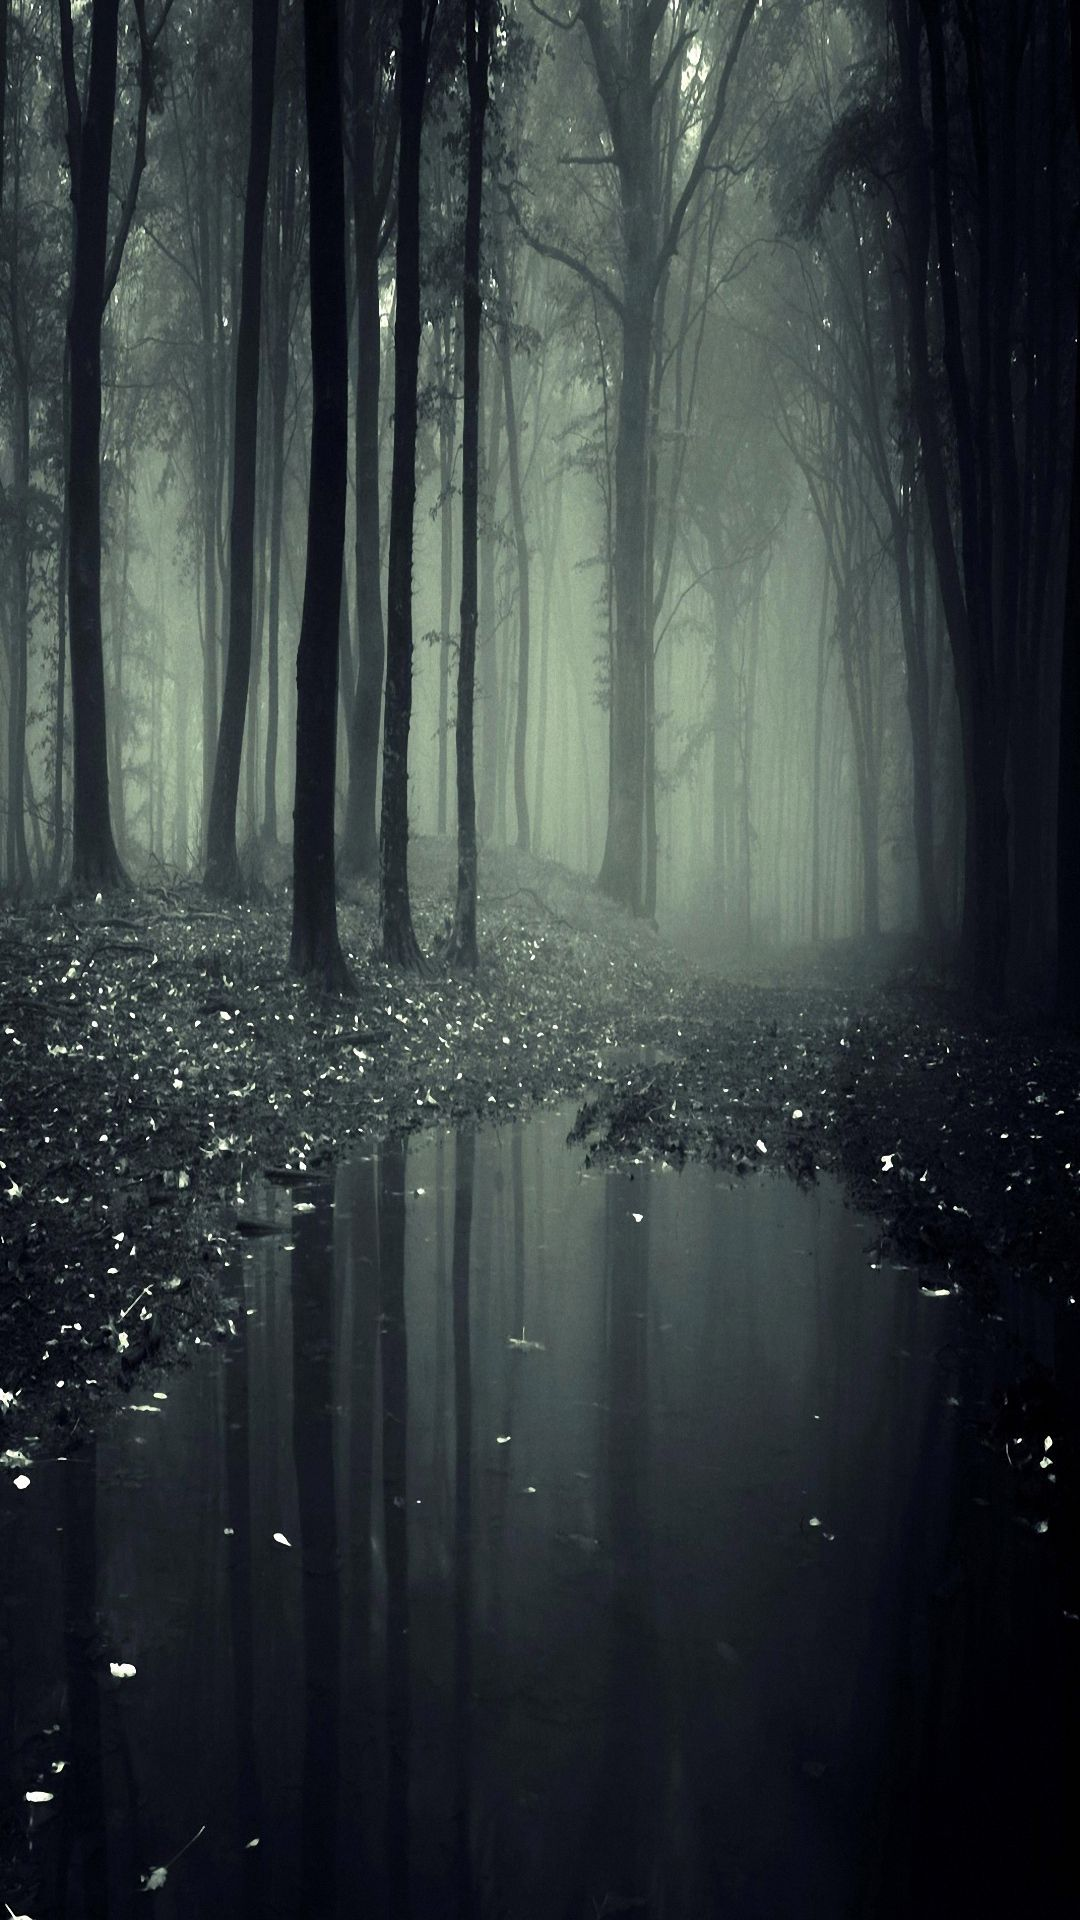 Hd 1080x1920 Jungle Galaxy S4 S5 Wallpapers 1080x1920 Forest Wallpaper Landscape Wallpaper Dark Wallpaper